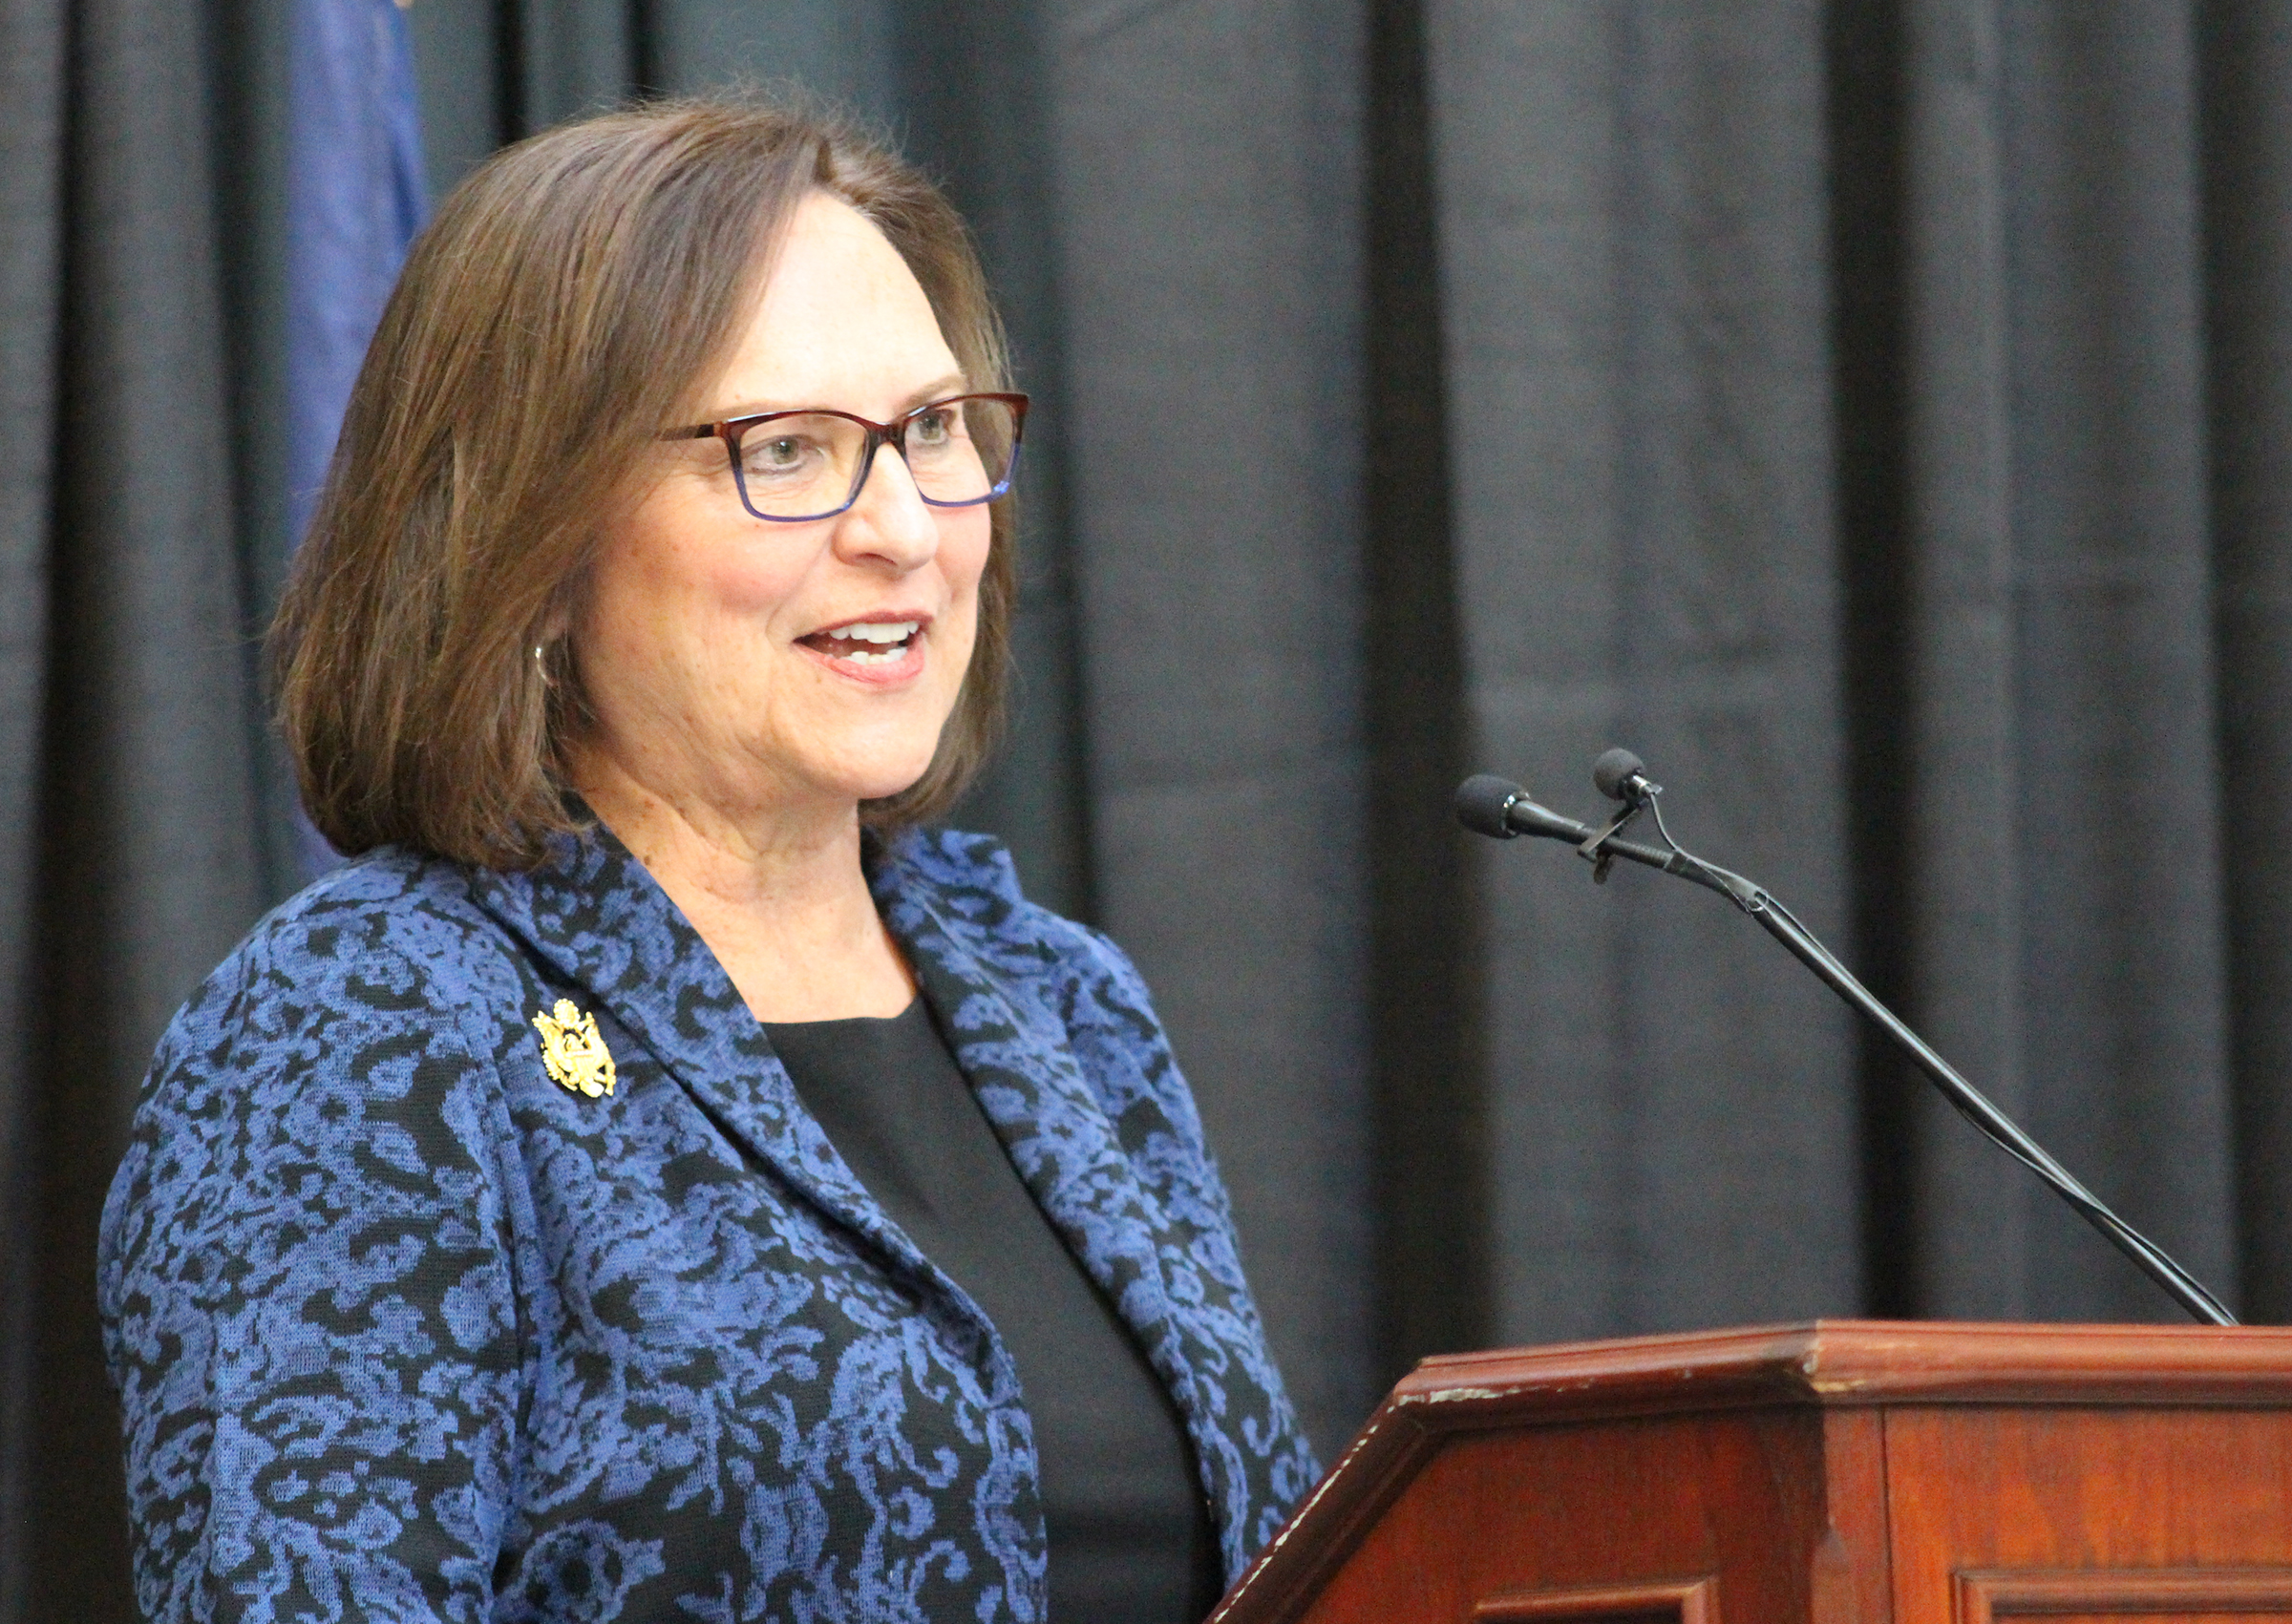 U.S. Sen. Deb Fischer delivers remarks during Brian C. Buescher's investiture ceremony at the Hruska Federal Courthouse on Friday, Nov. 15, 2019. (Photo by Scott Stewart)